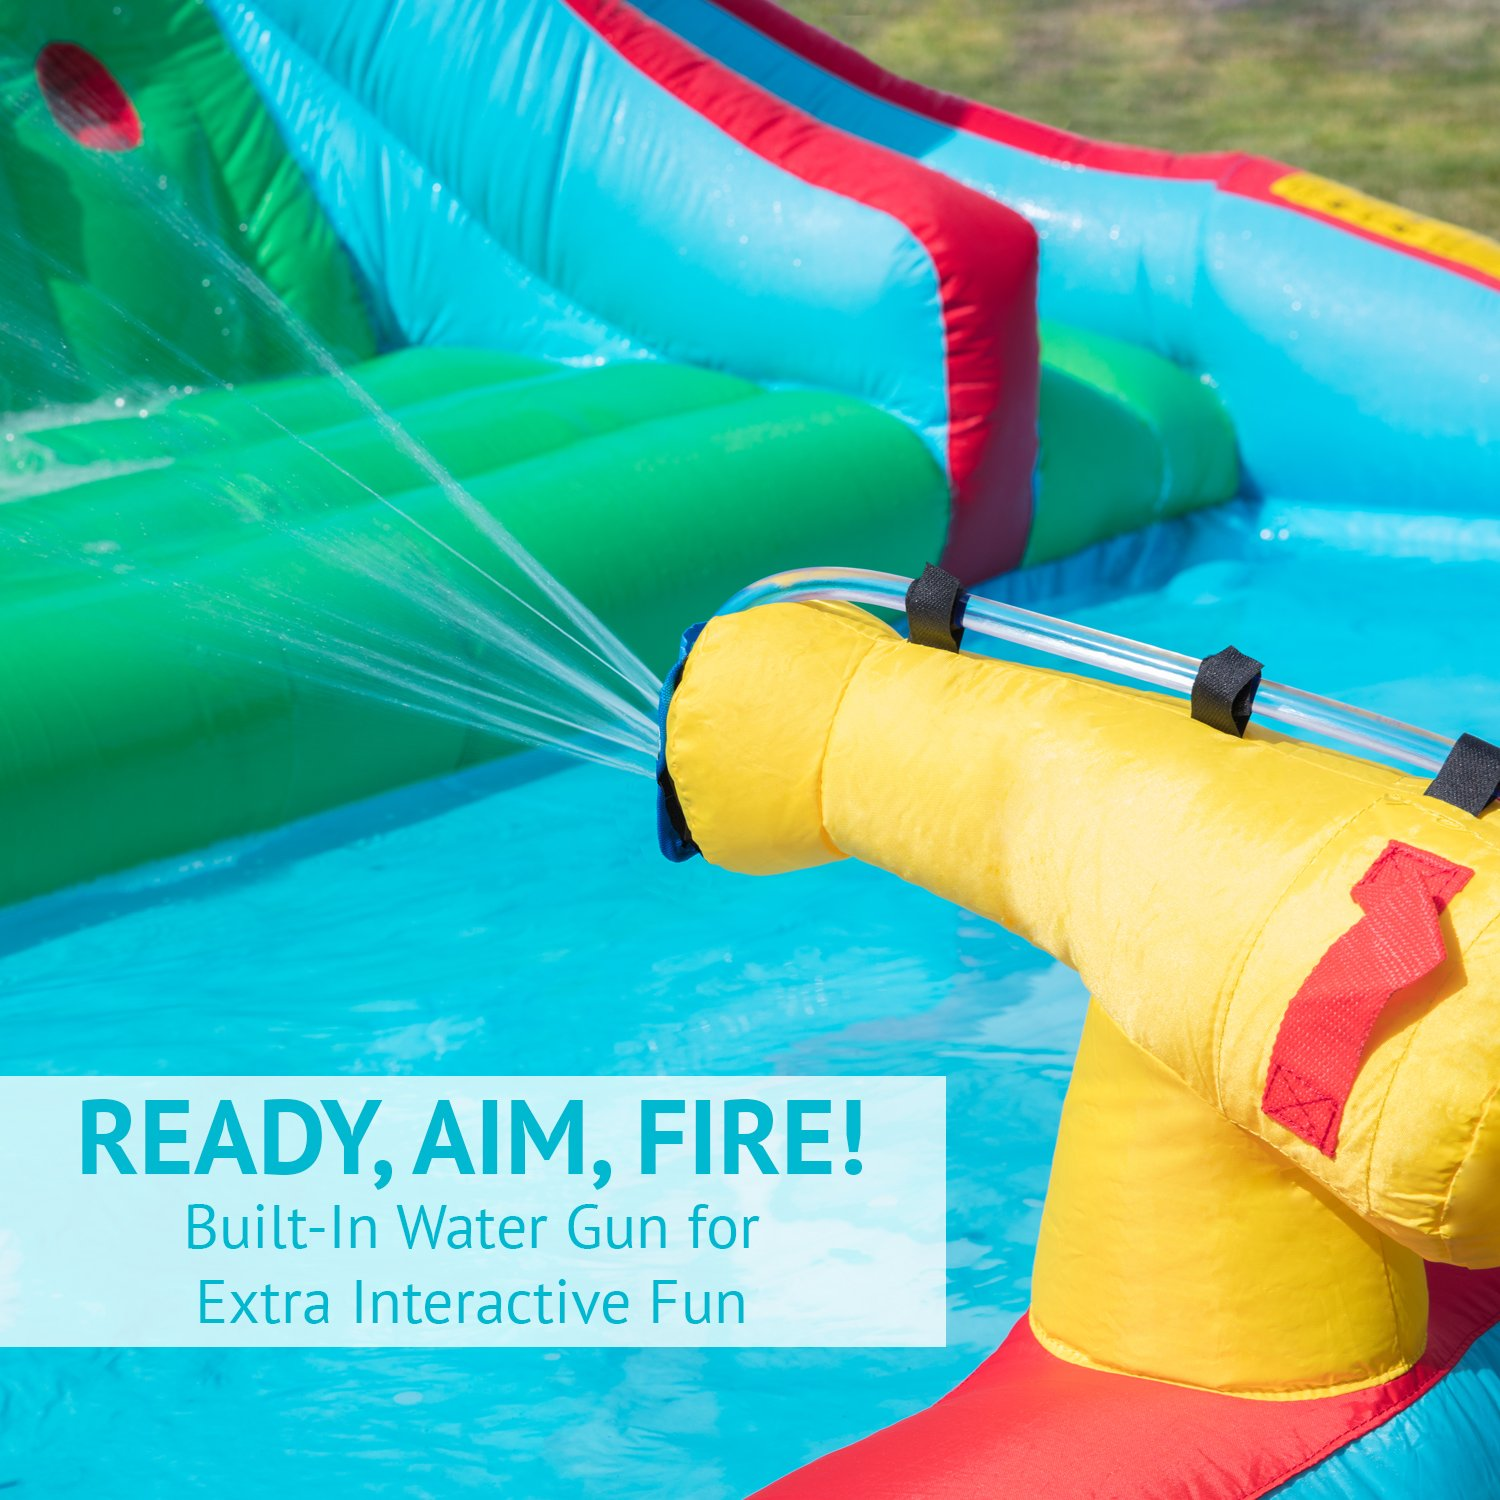 Deluxe Inflatable Water Slide Park – Heavy-Duty Nylon Bouncy Station for Outdoor Fun - Climbing Wall, Two Slides & Splash Pool – Easy to Set Up & Inflate with Included Air Pump & Carrying Case by Sunny & Fun (Image #4)